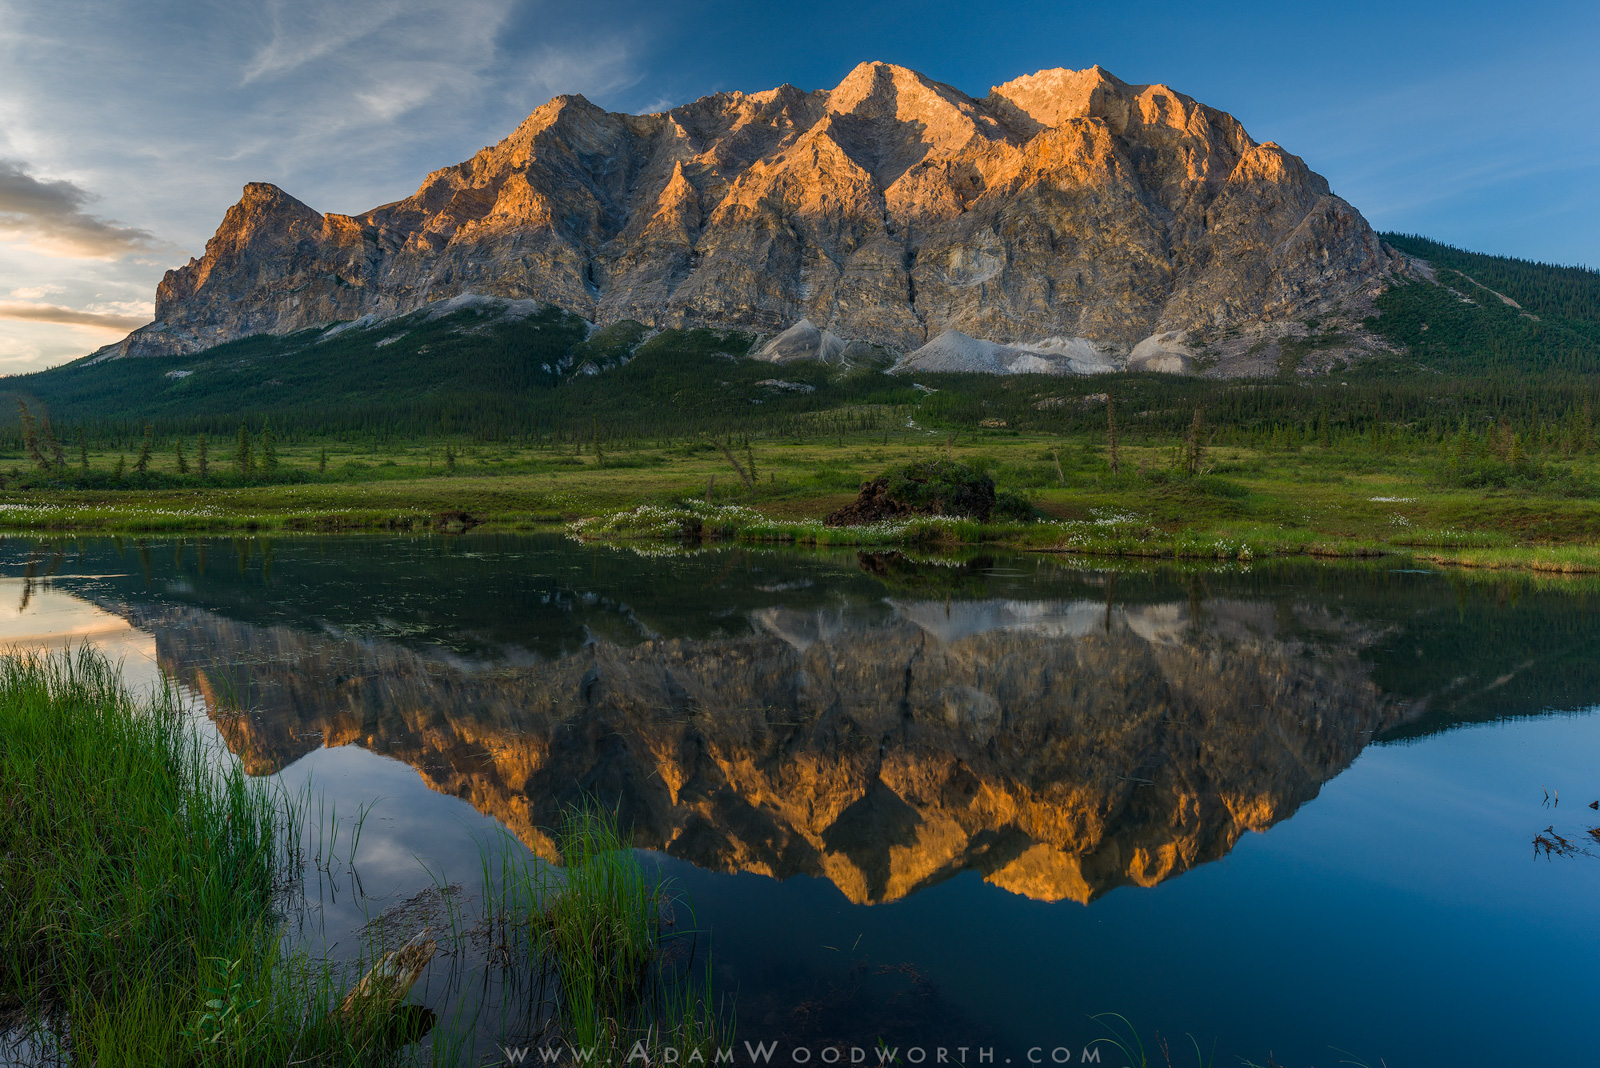 LOFOTEN, Mountains, Sunset, alaska, arctic circle, brooks range, dalton highway, limestone, marble, palsas, pond, reflection, sukakpak mountain, photo